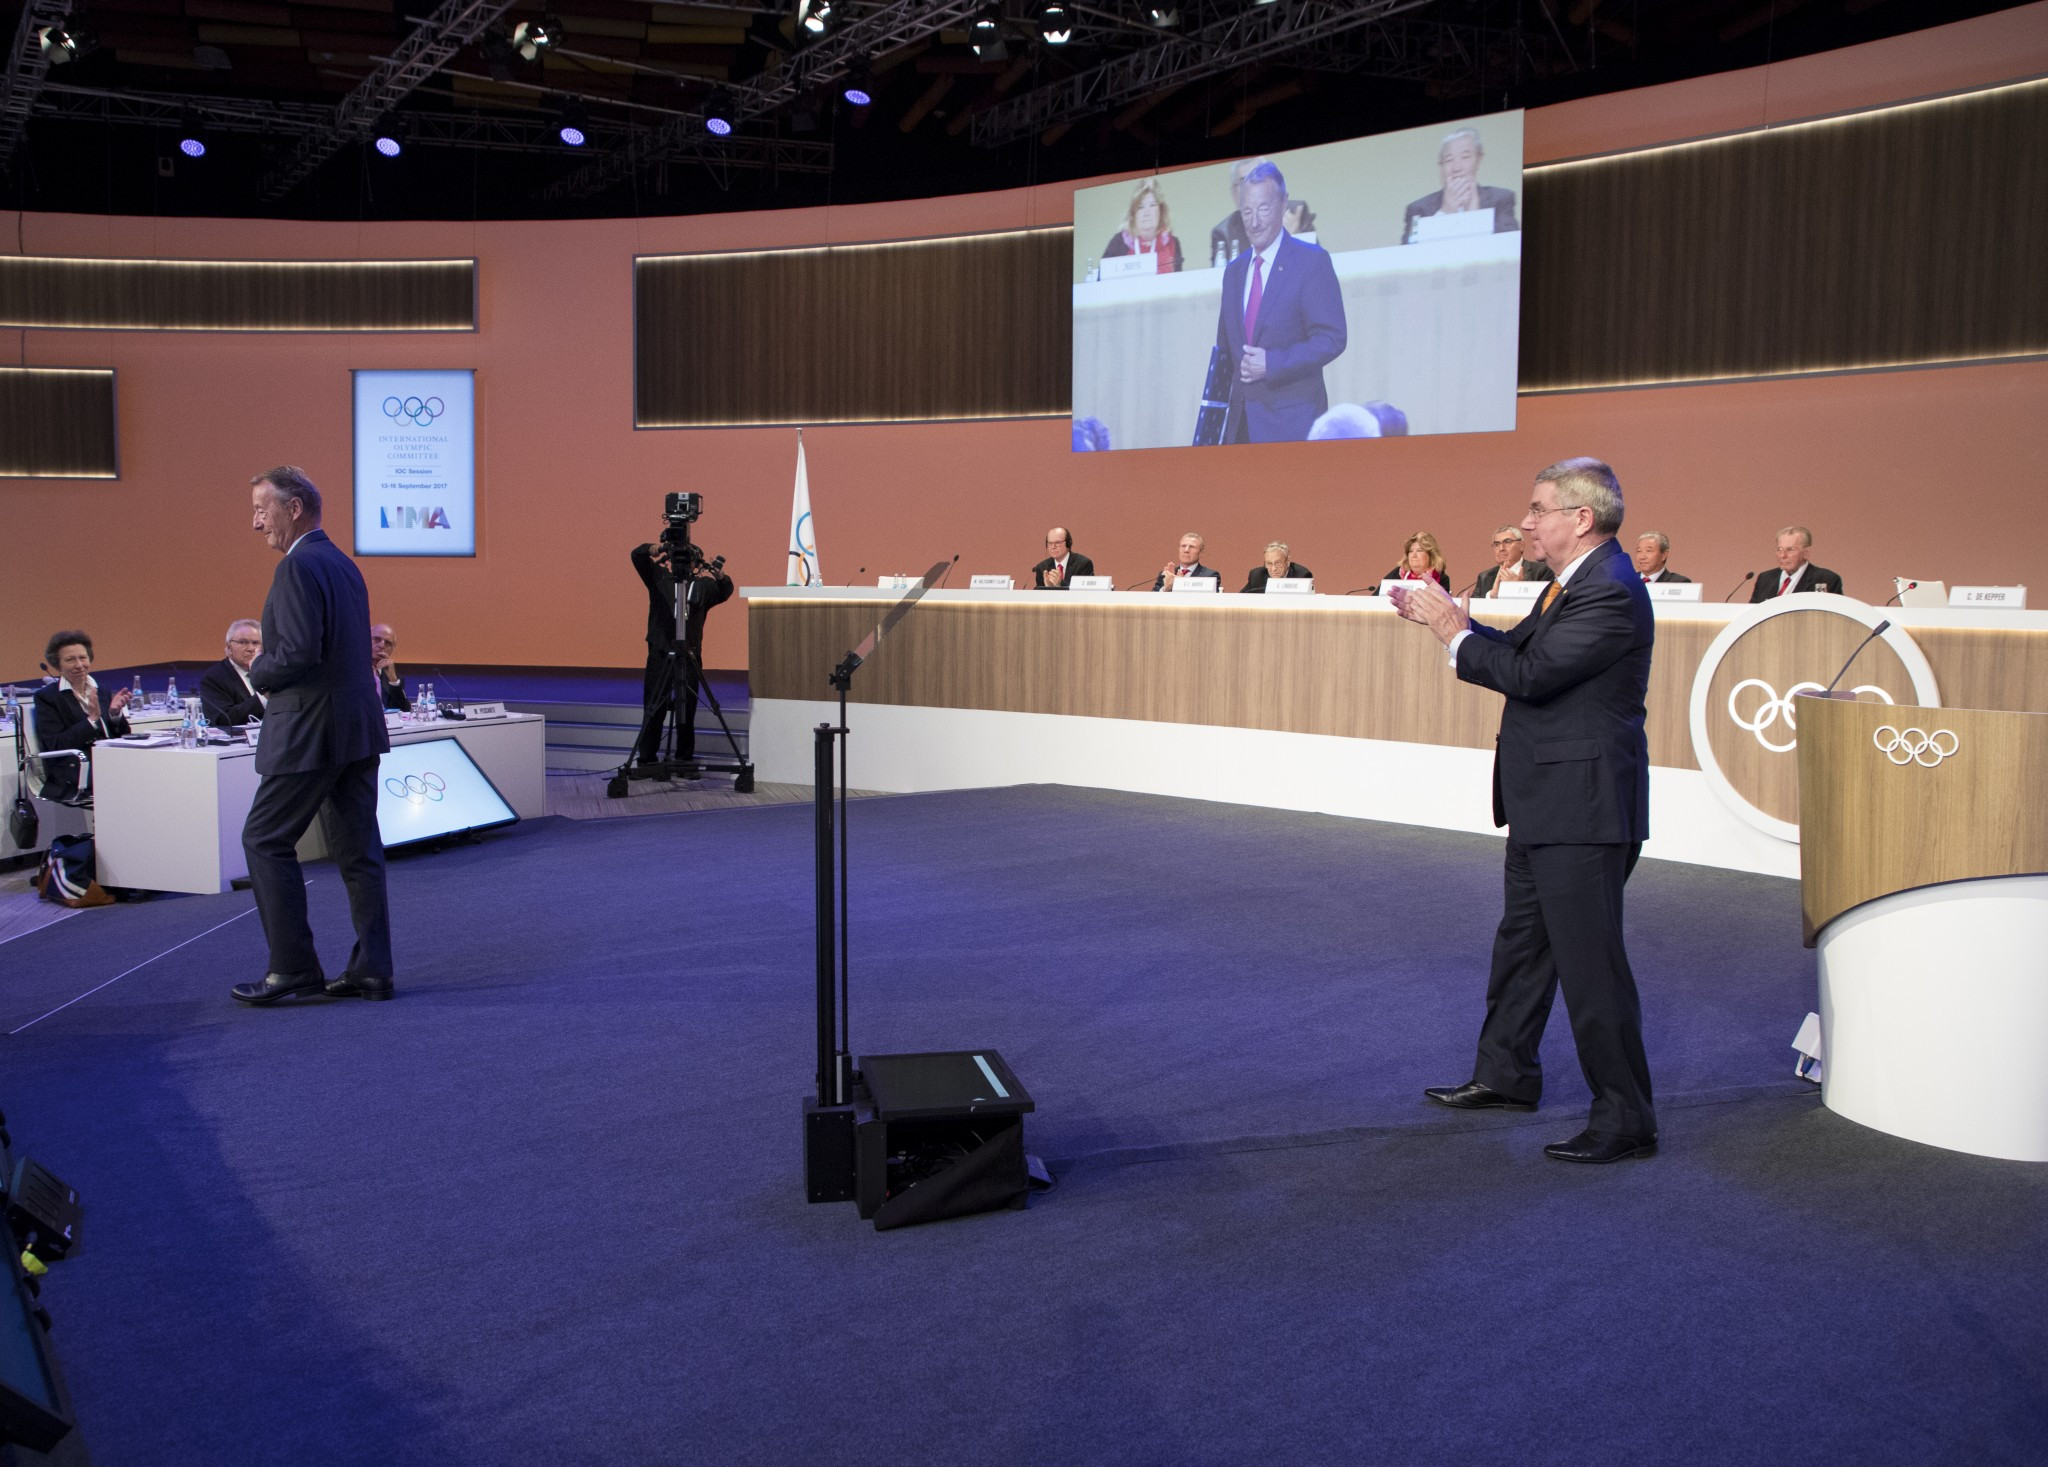 131st International Olympic Committee Session: Day three